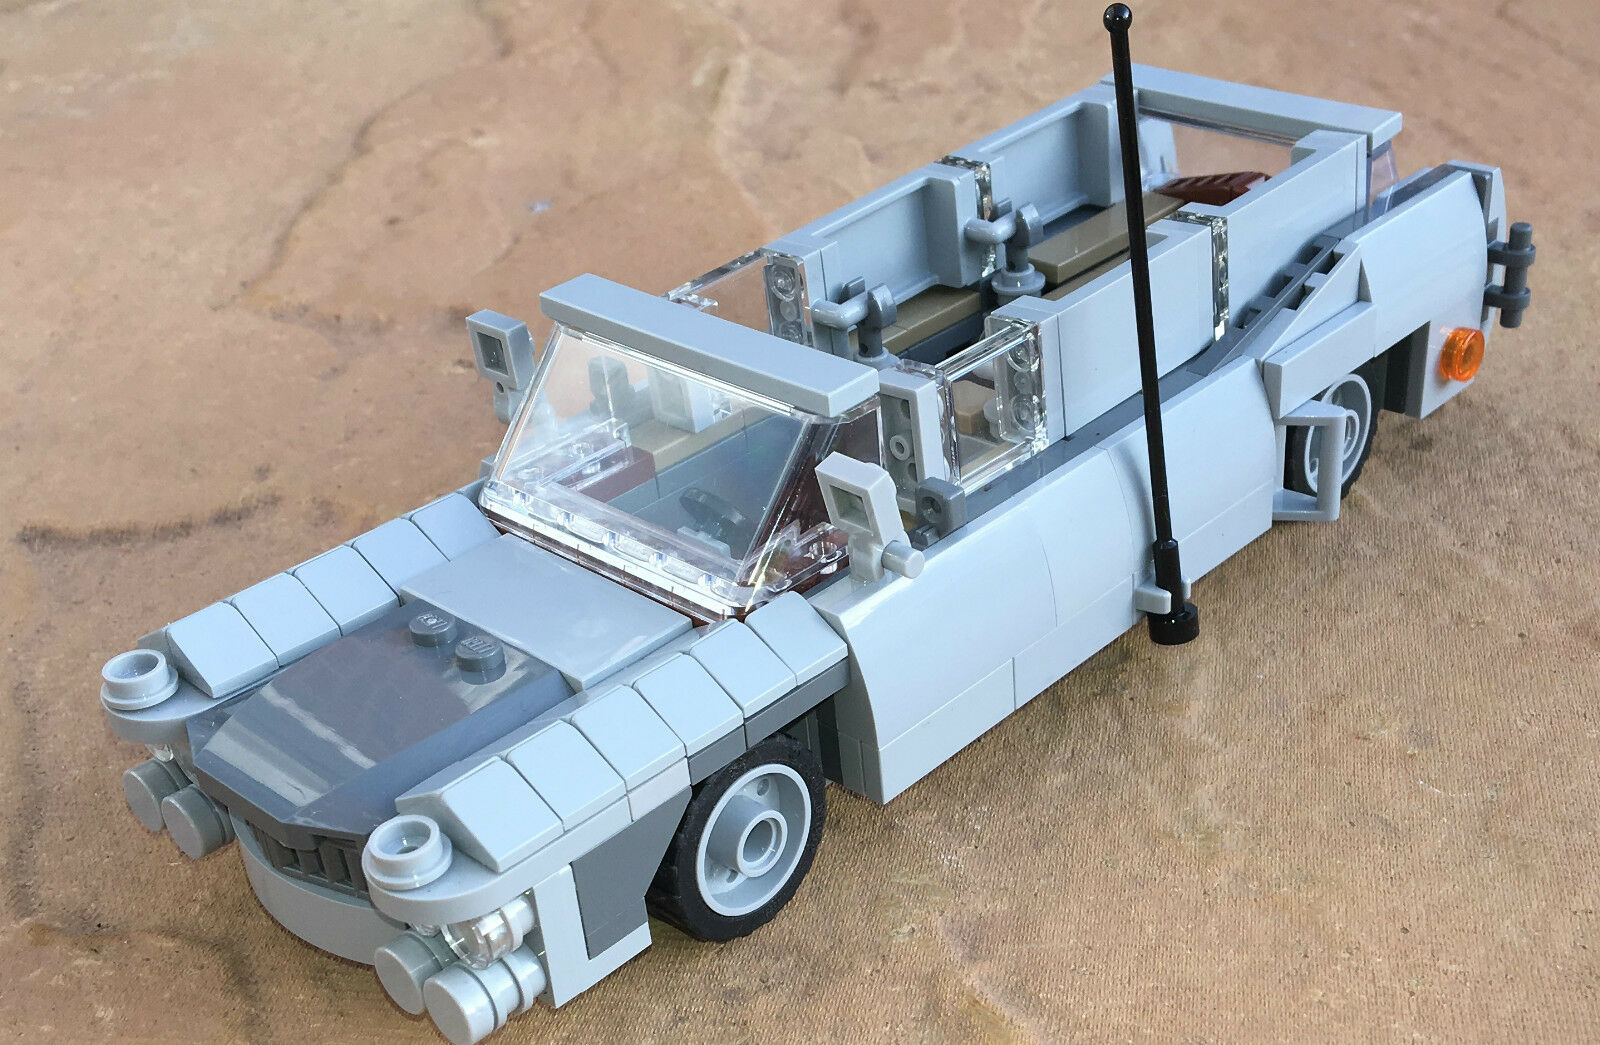 Original LEGO NEW PARTS - CADILLAC MAD MAX CAR CUSTOM VEHICLE - my design